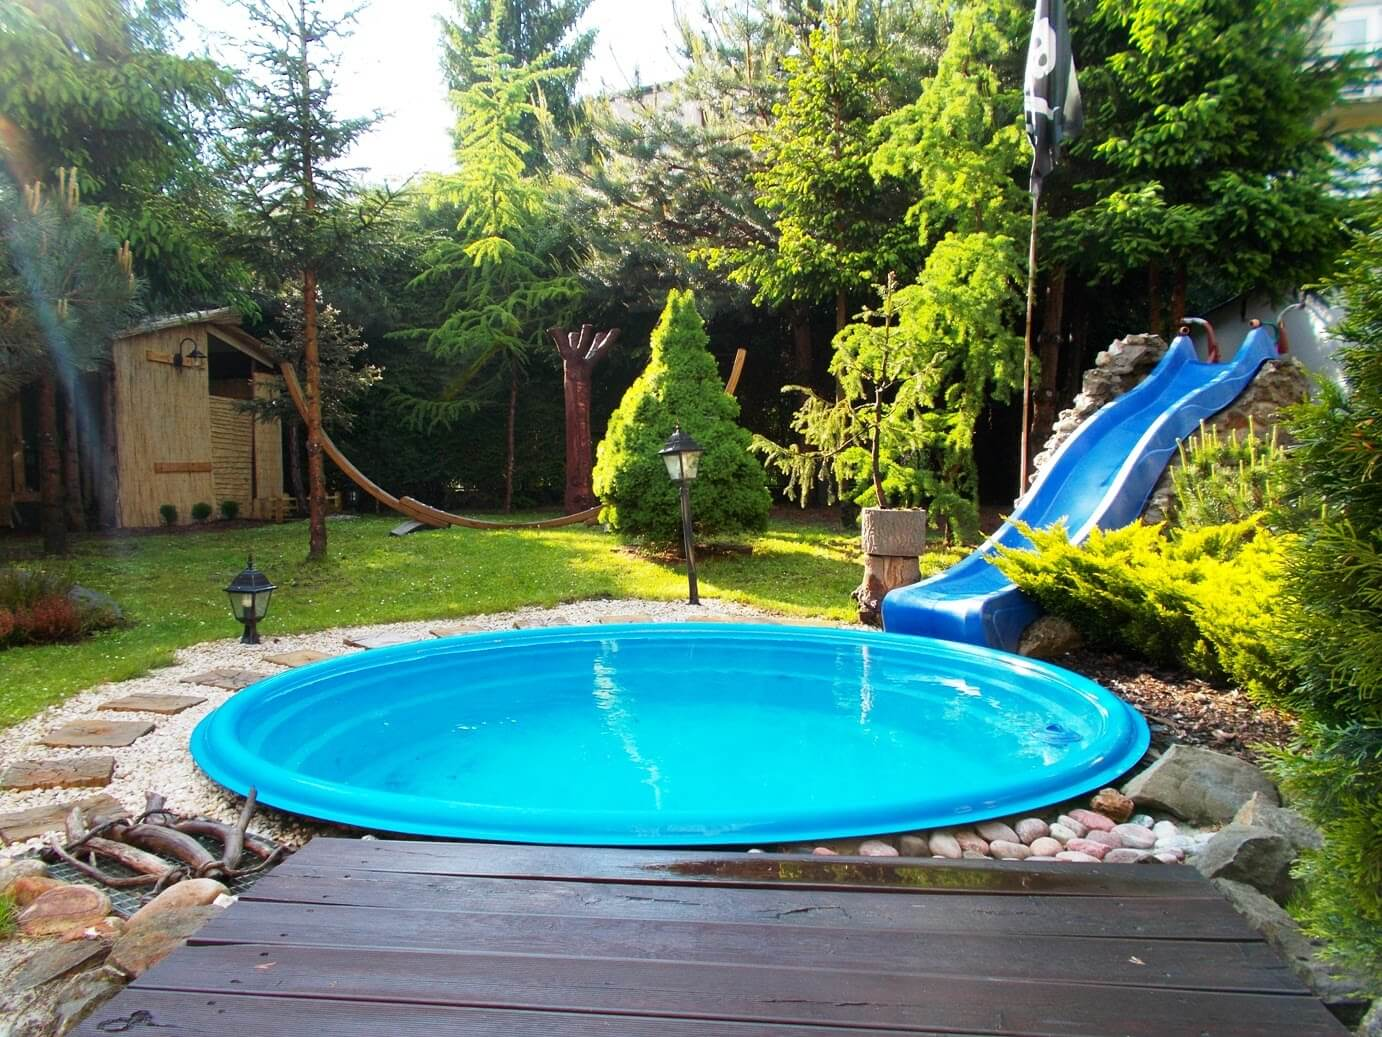 Slide into summer with these fun pool ideas